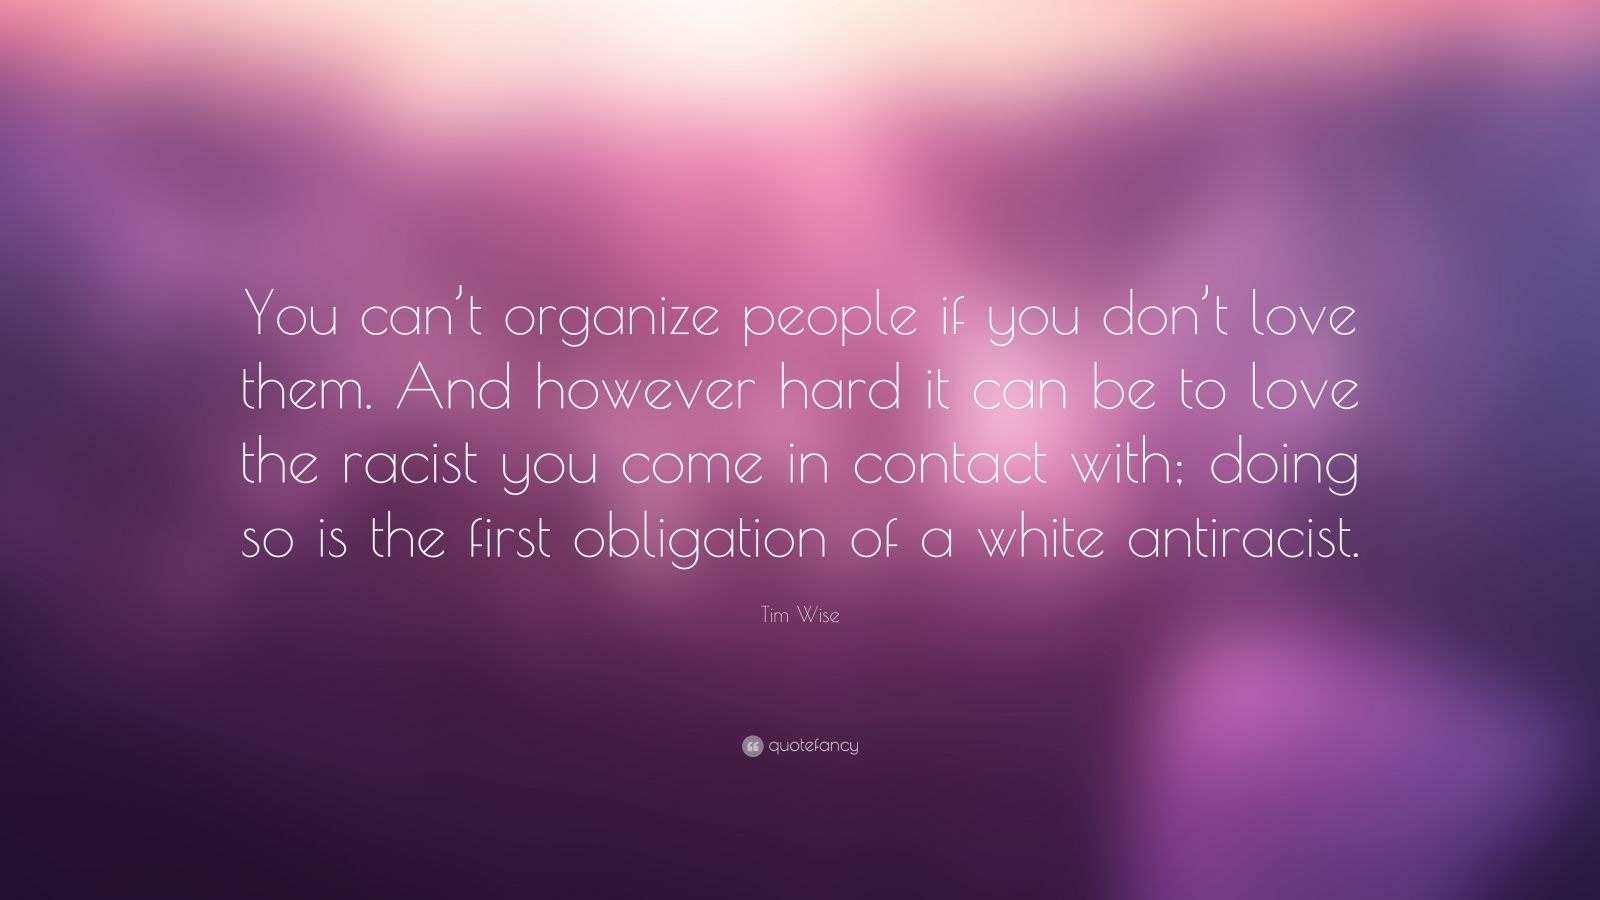 """Tim Wise Quote: """"You can't organize people if you don't love them. And however hard it can be to love the racist you come in contact with; doing so is the first obligation of a white antiracist."""""""